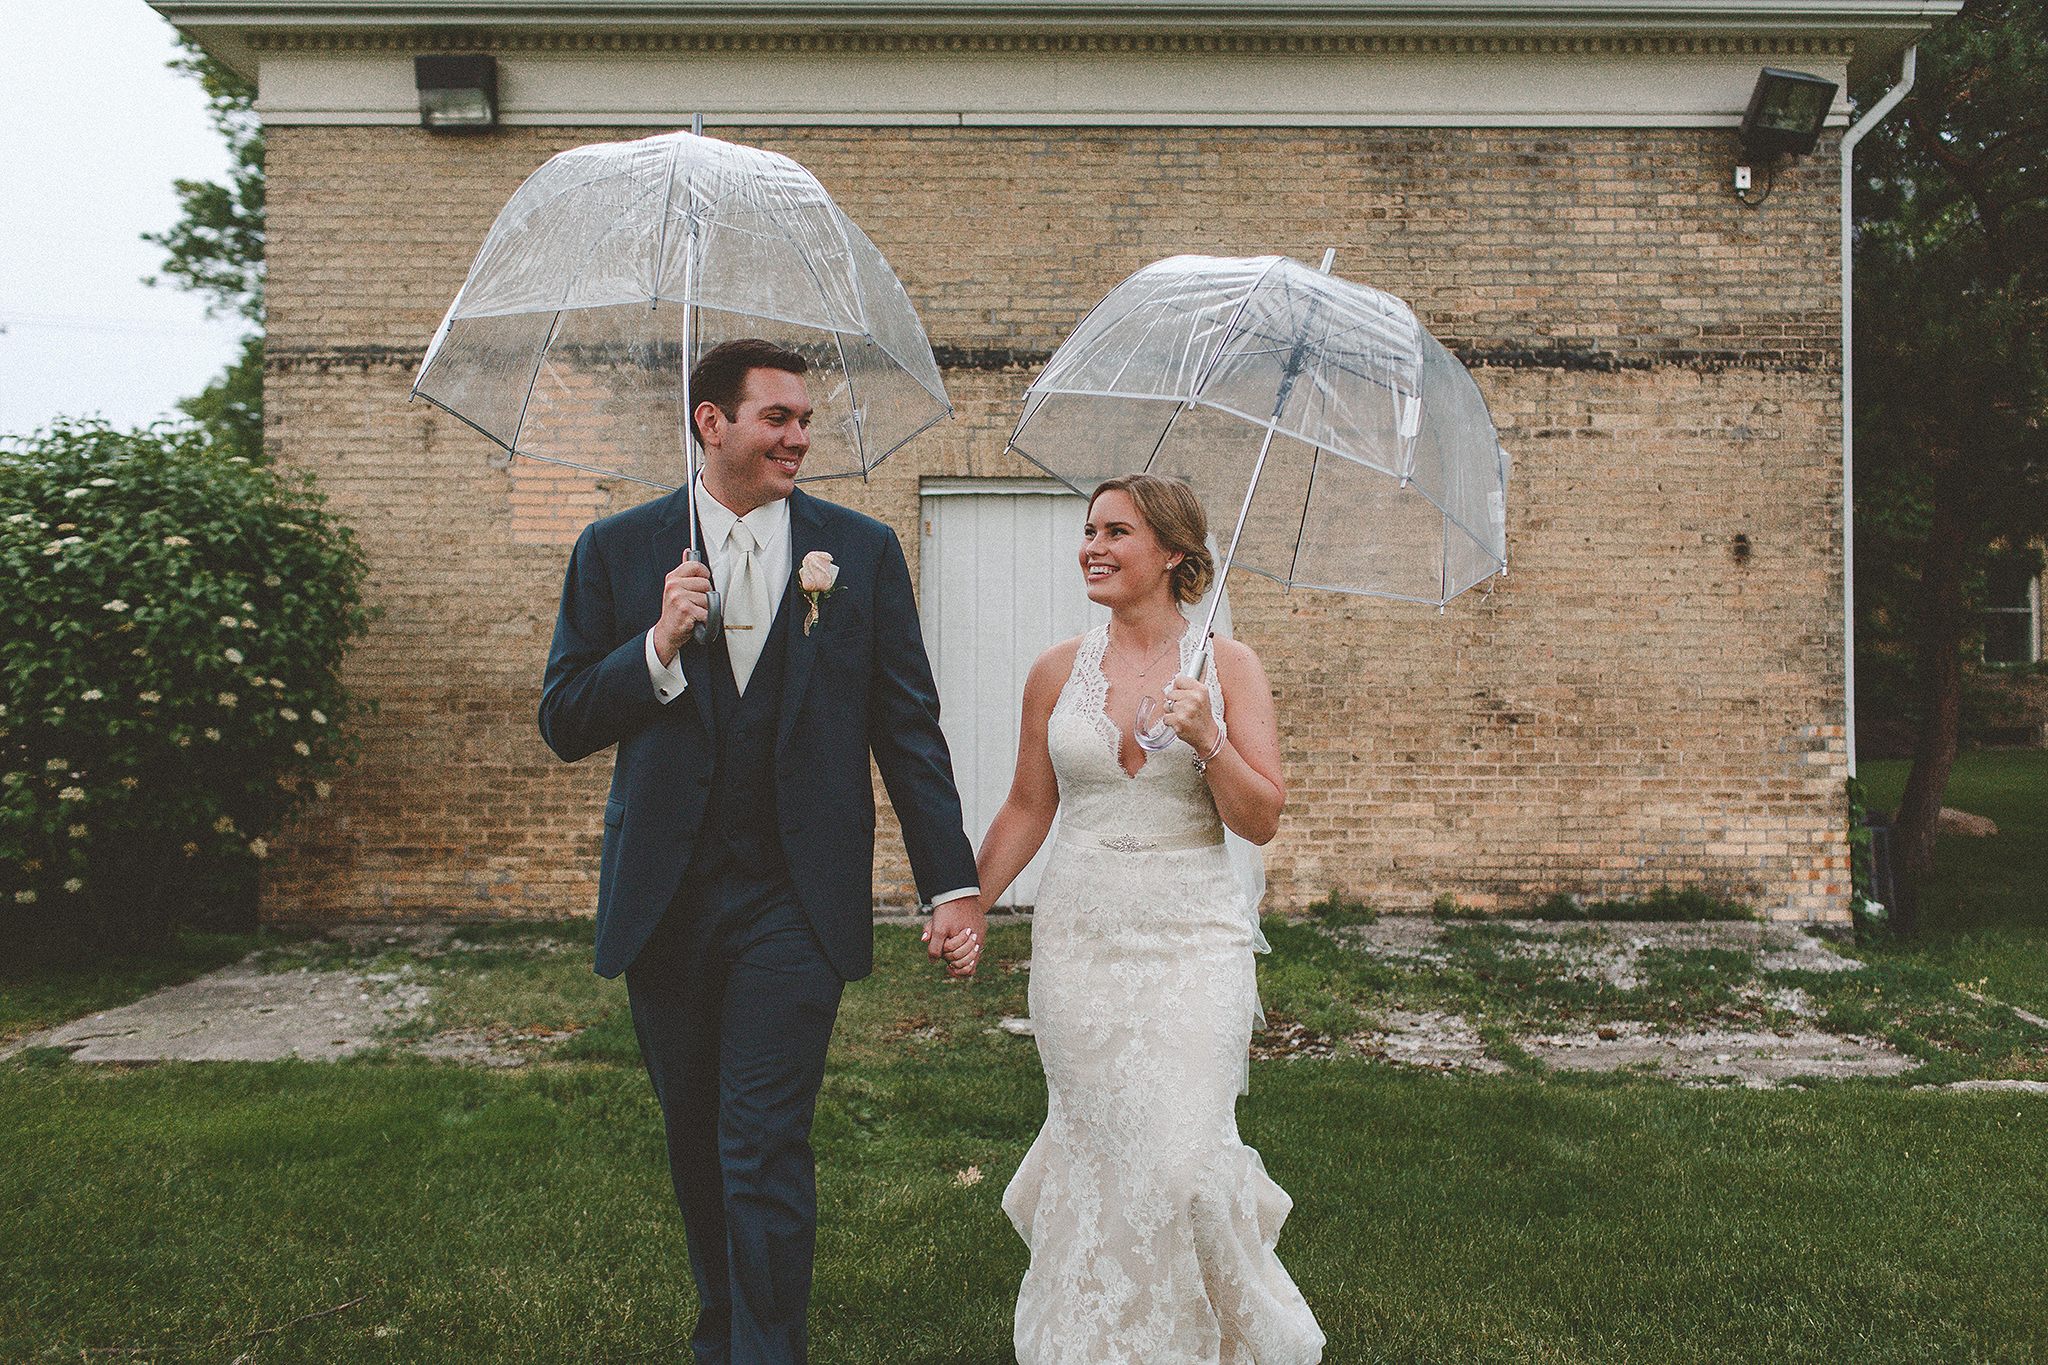 bride and groom holding clear umbrellas, walking towards camera, looking at each other | dekalb IL photographer